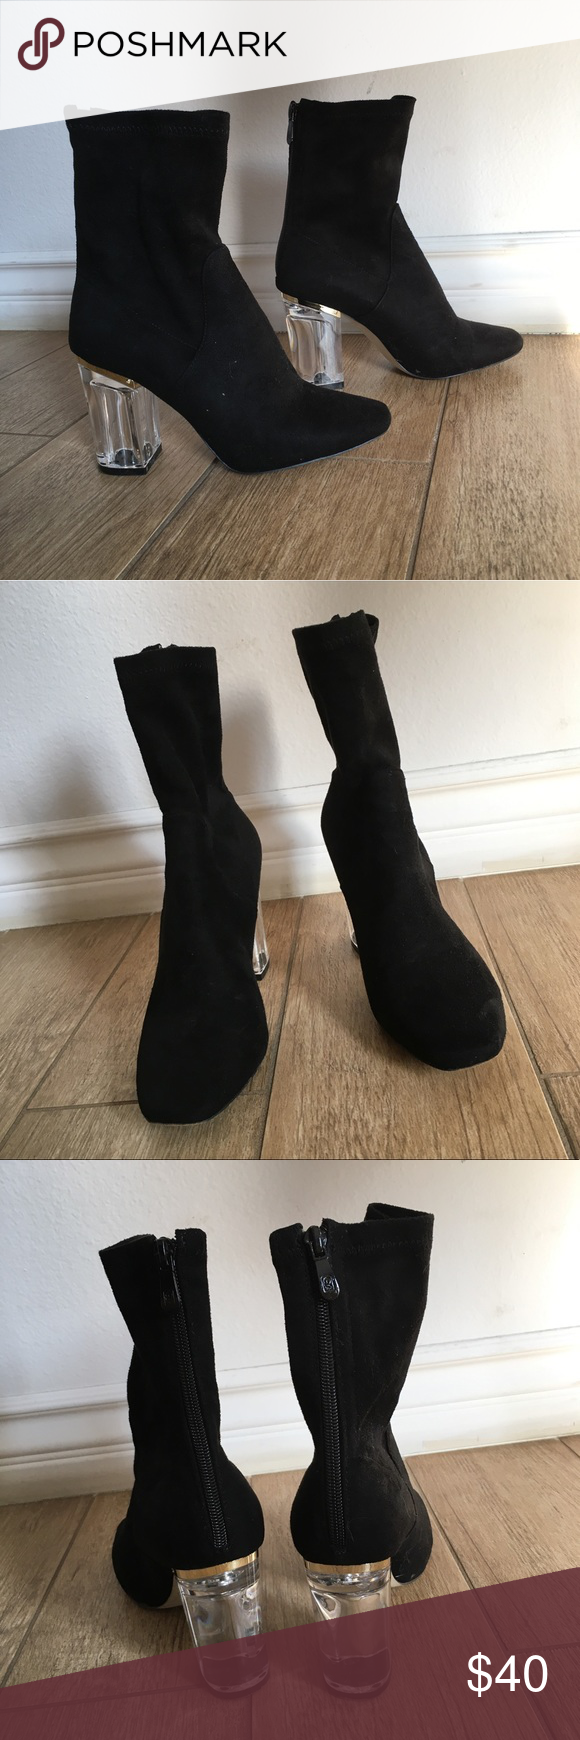 Public Desire Black Suede Boots Clear Block Heel Preloved